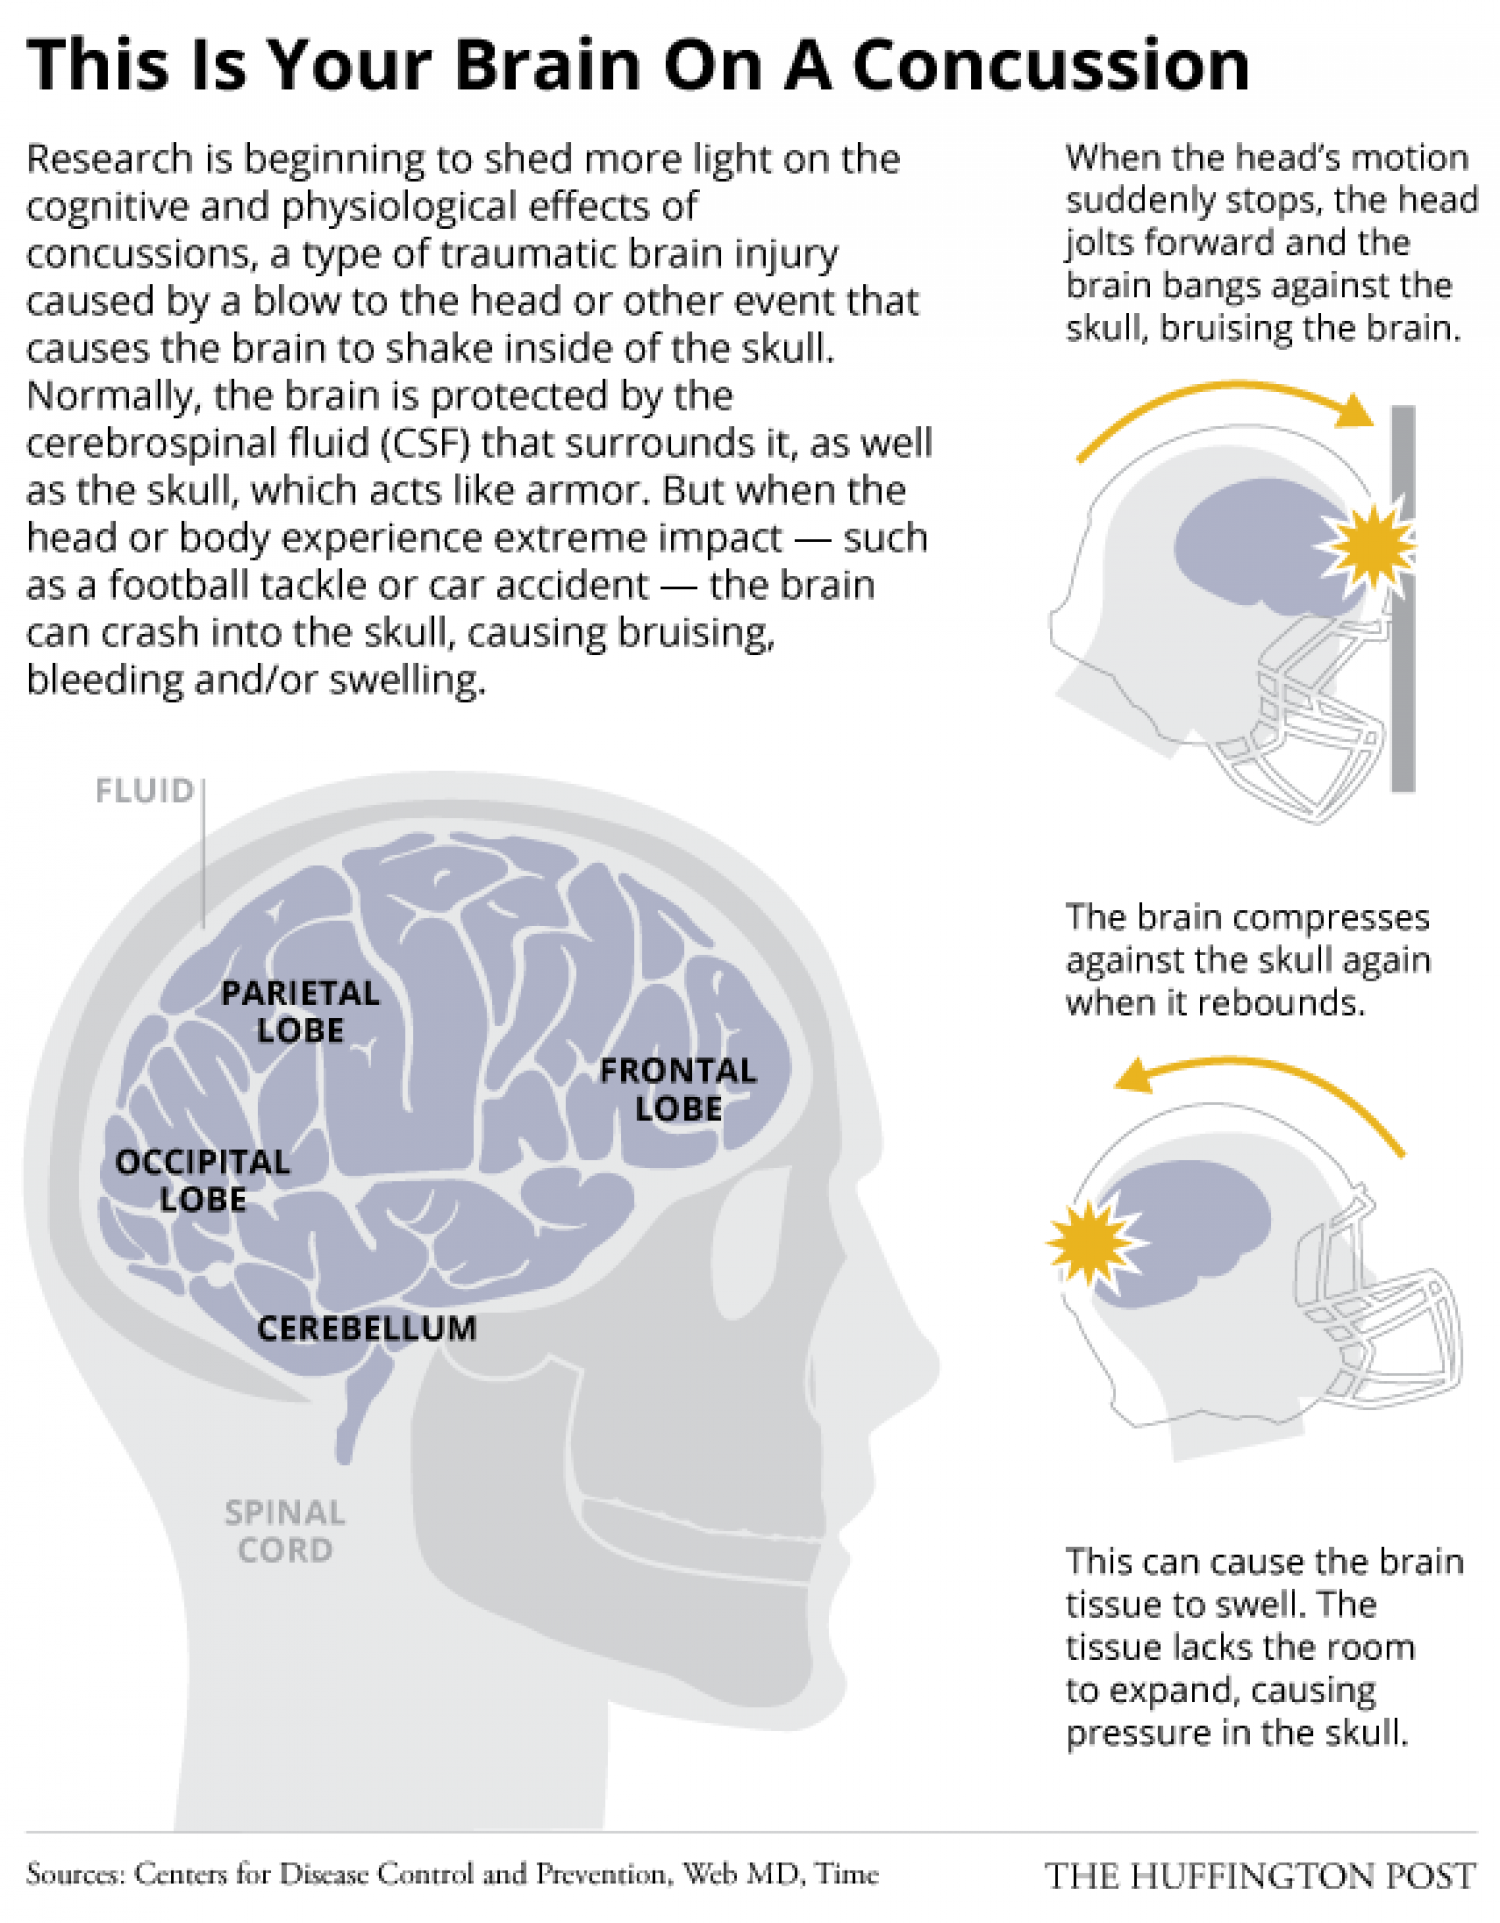 an introduction to a concussion a bruise to the brain Rehabilitation after brain injury at dodd rehabilitation hospital talk to your doctor or health care team if you have any questions about your care  a concussion may cause bruising, bleeding or swelling of the brain a skull fracture may occur along with a concussion.